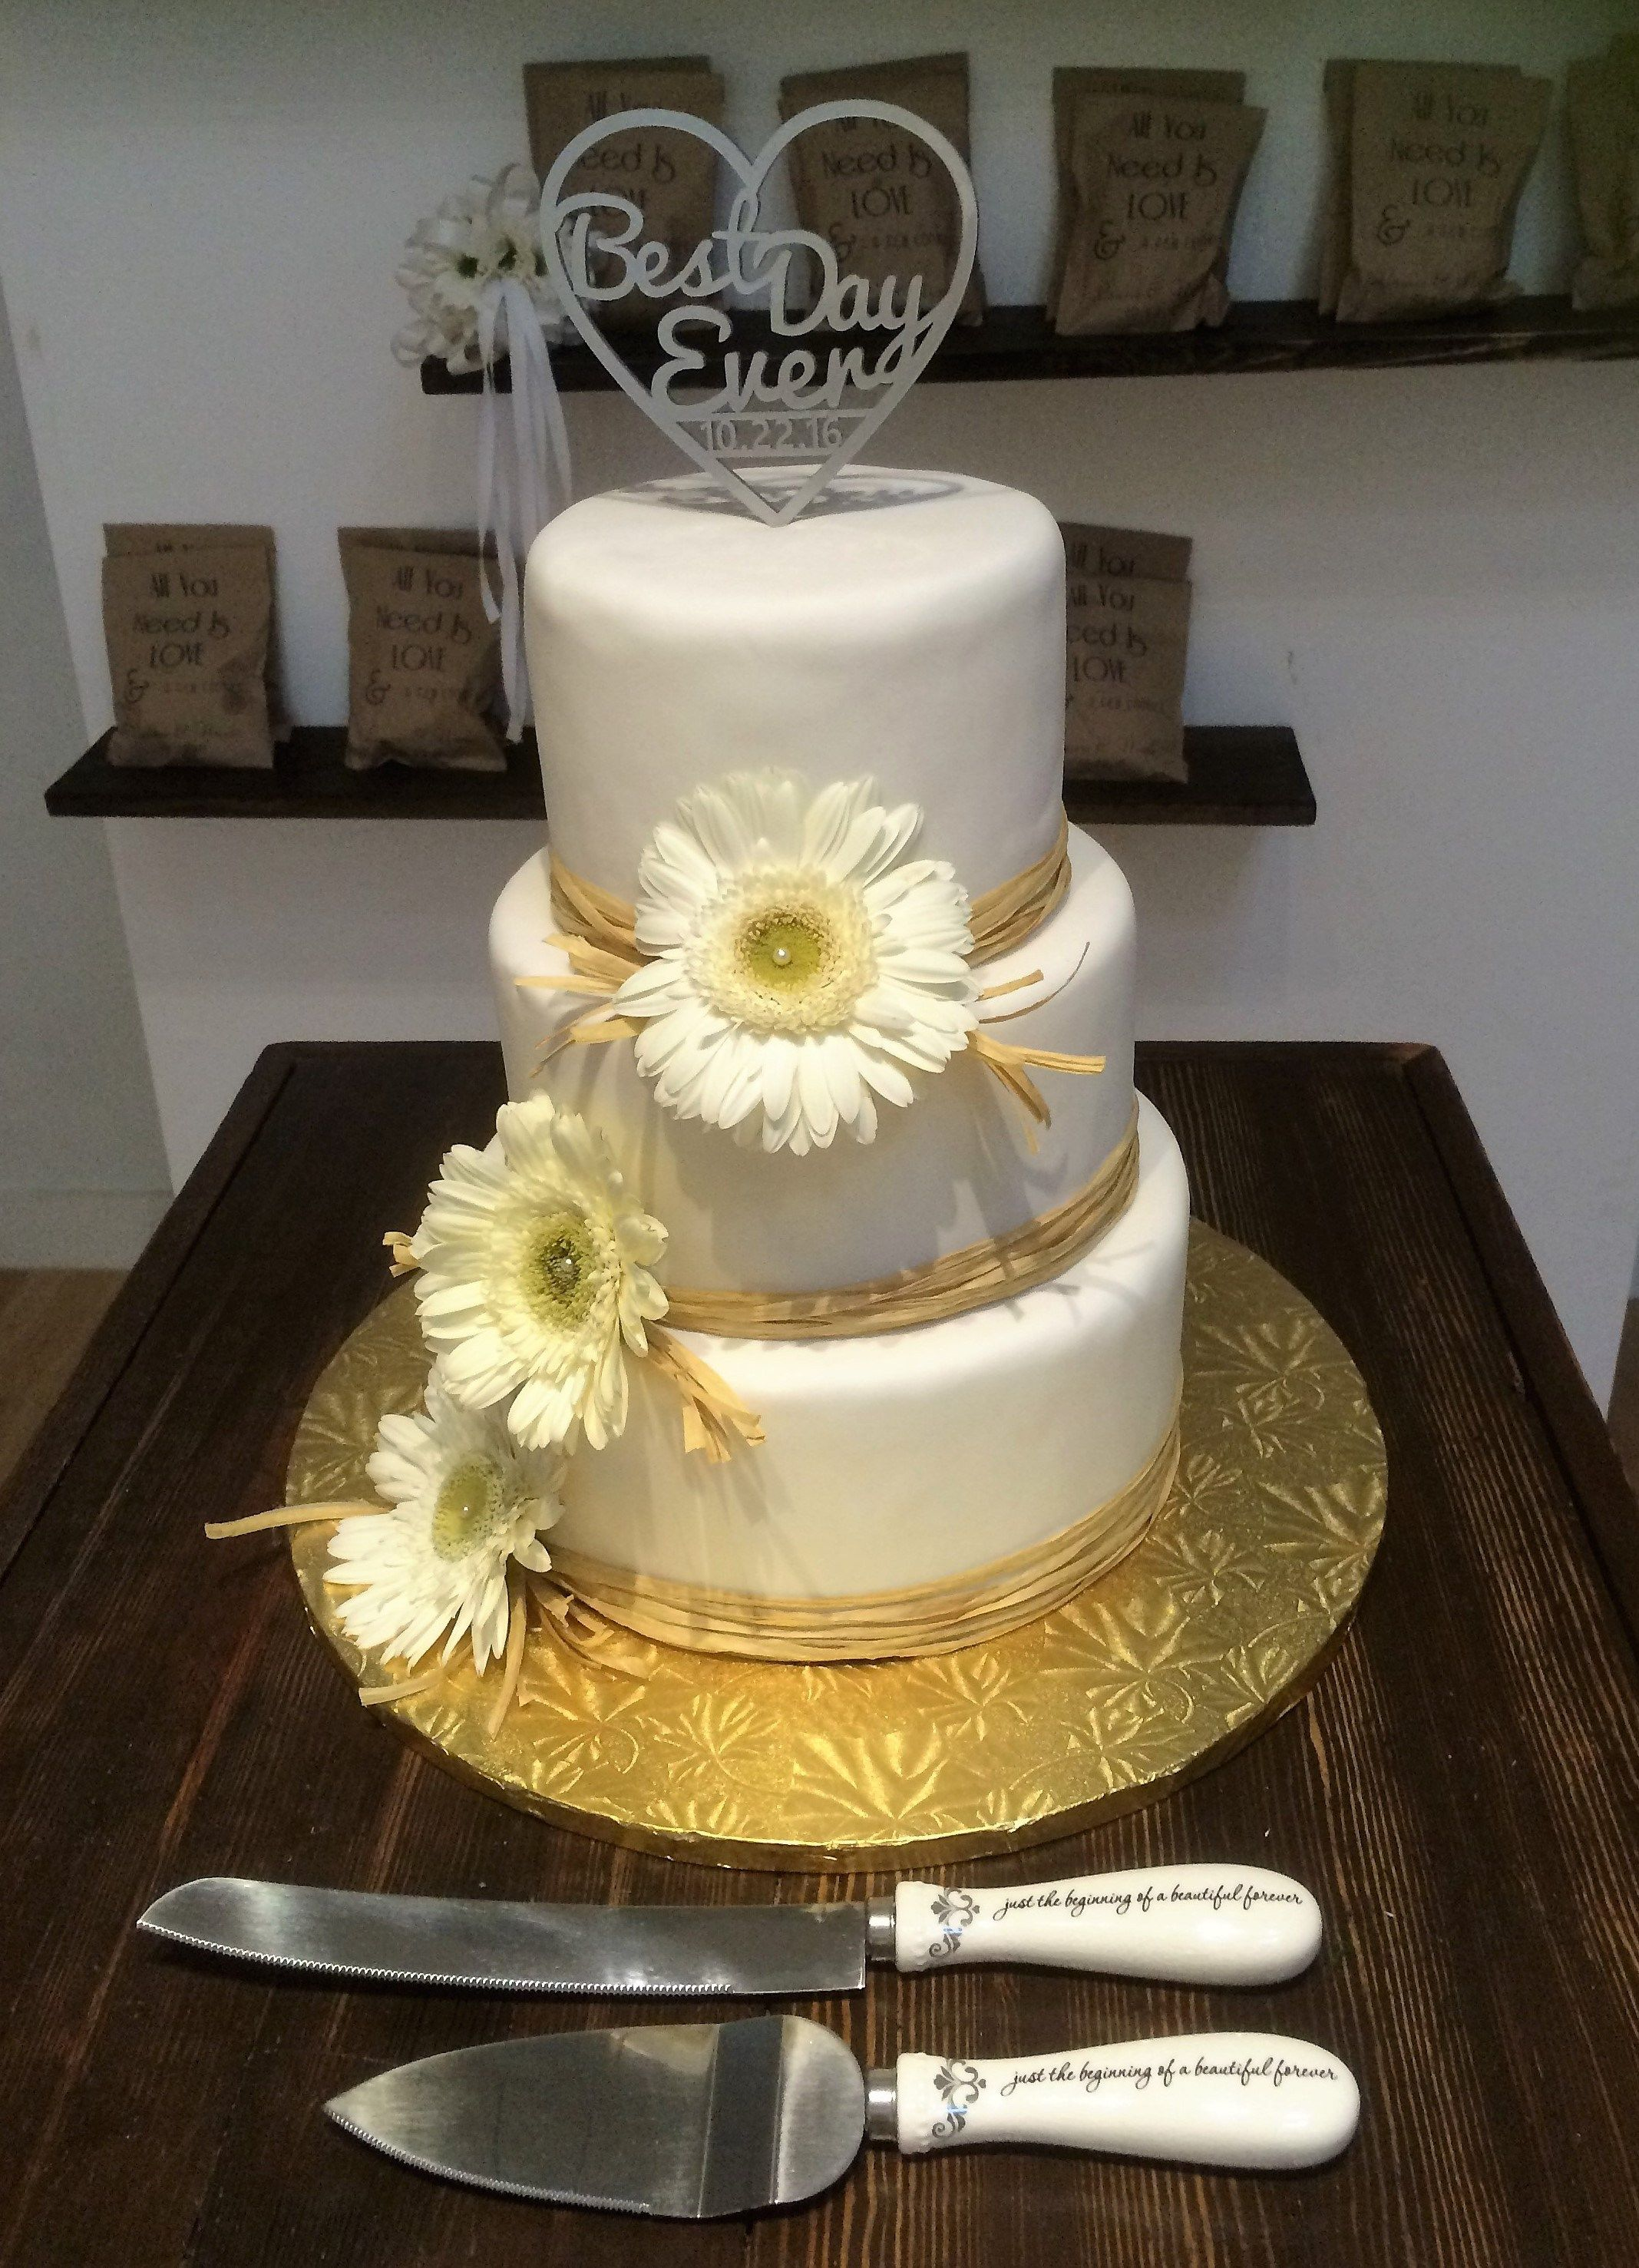 Customized Wedding cakes and dessert tables Urban Bride Chic